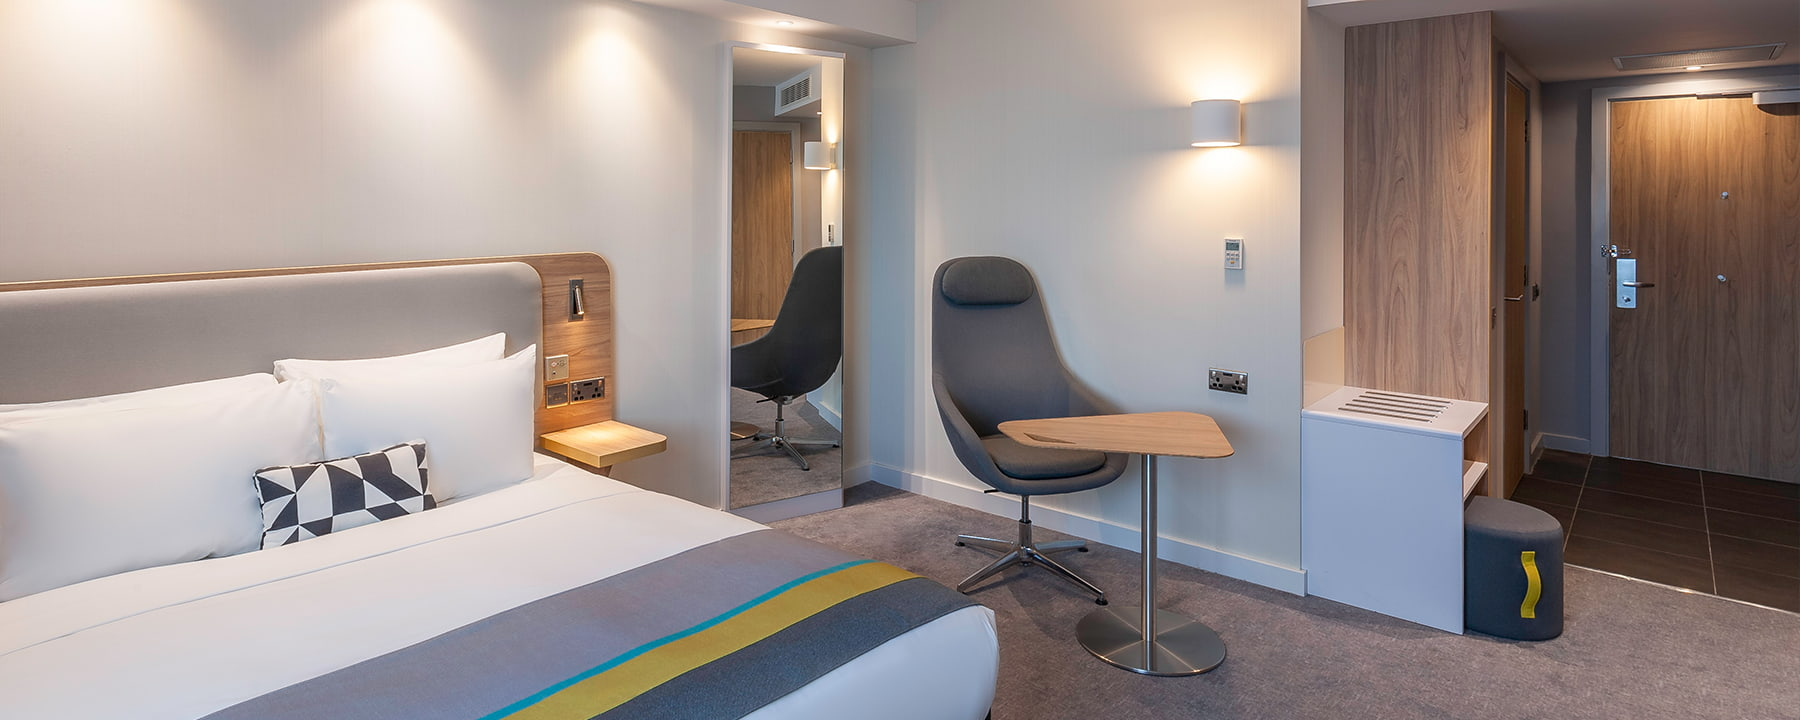 Dublin Airport Hotel Accessible Bedroom